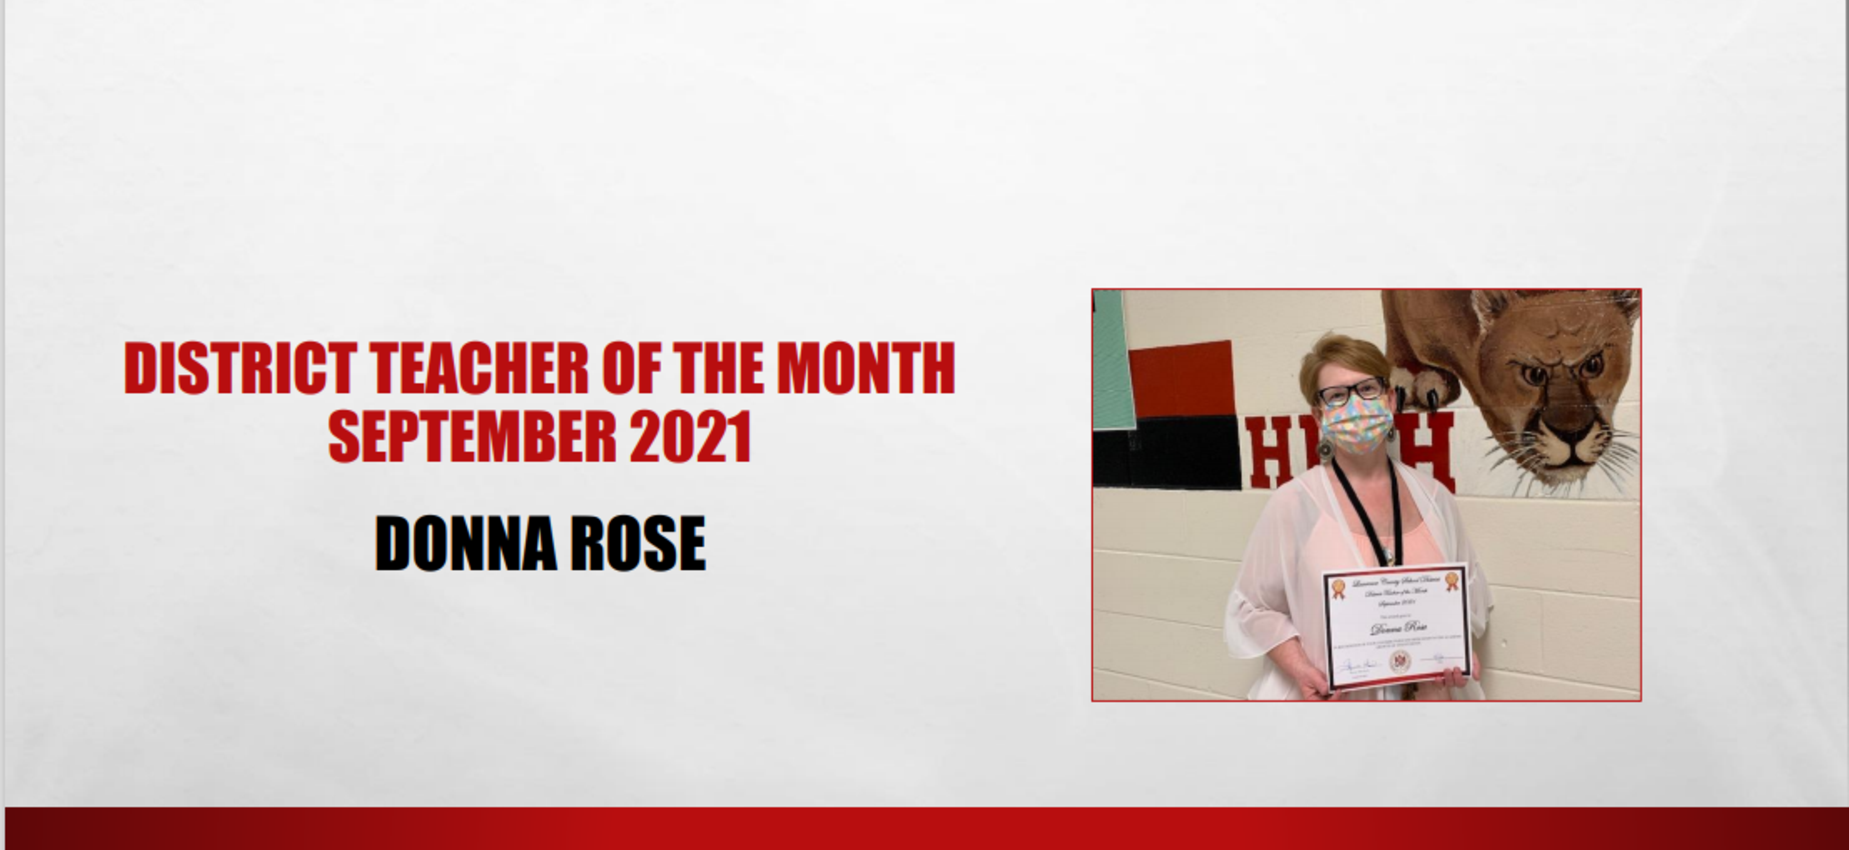 September 2021 District Teacher of the Month Donna Rose